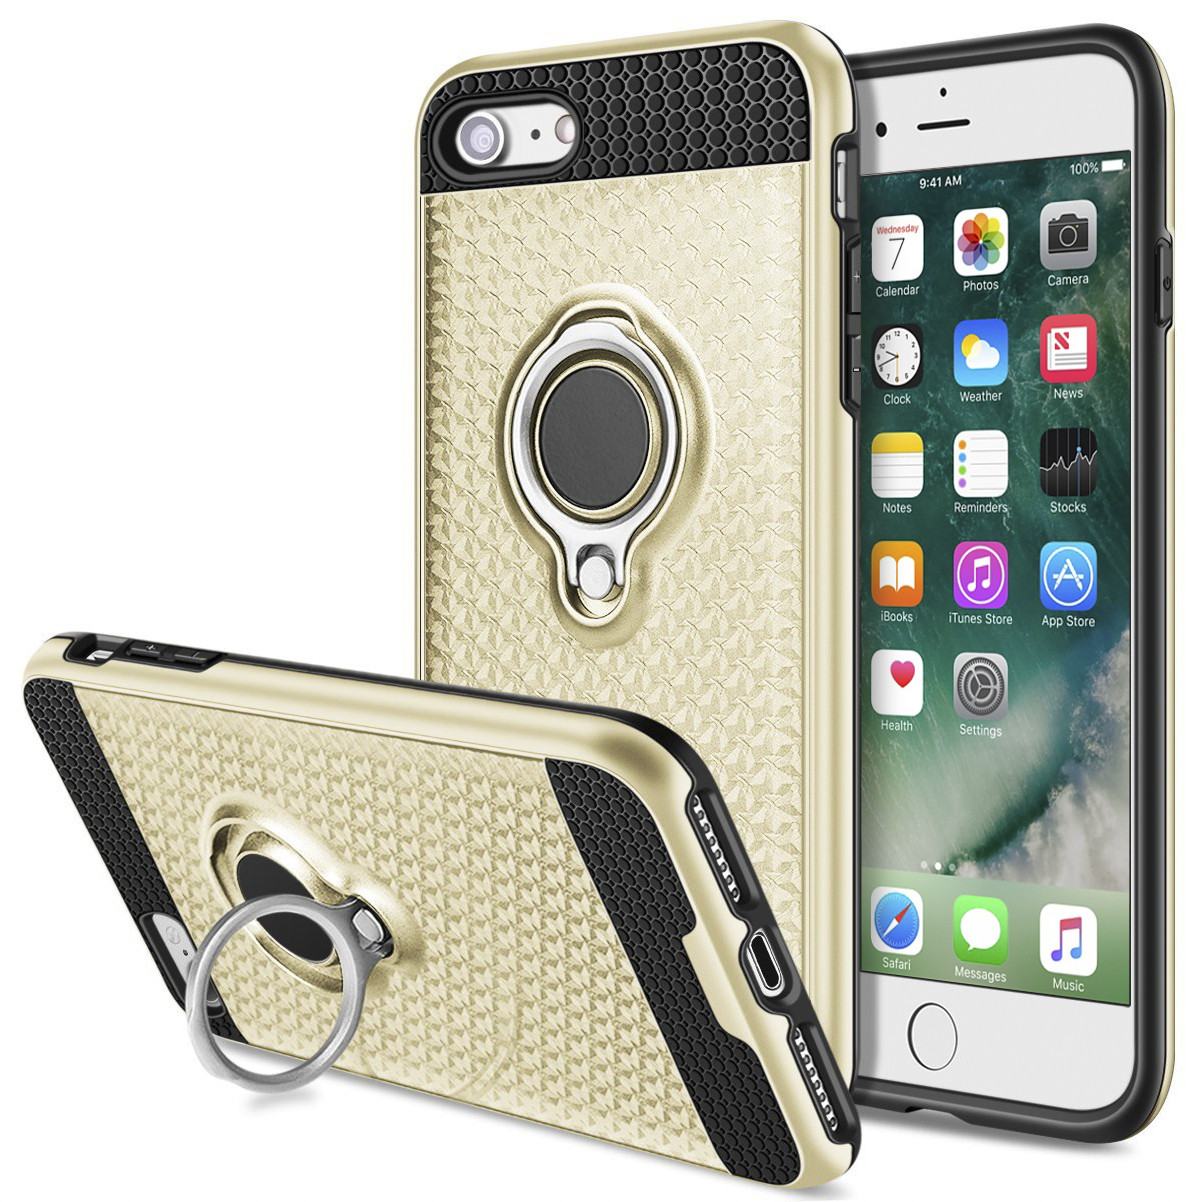 Apple iPhone 7 -  Heavy-Duty Rugged Case with Hideaway Ring Holder Stand, Gold/Black